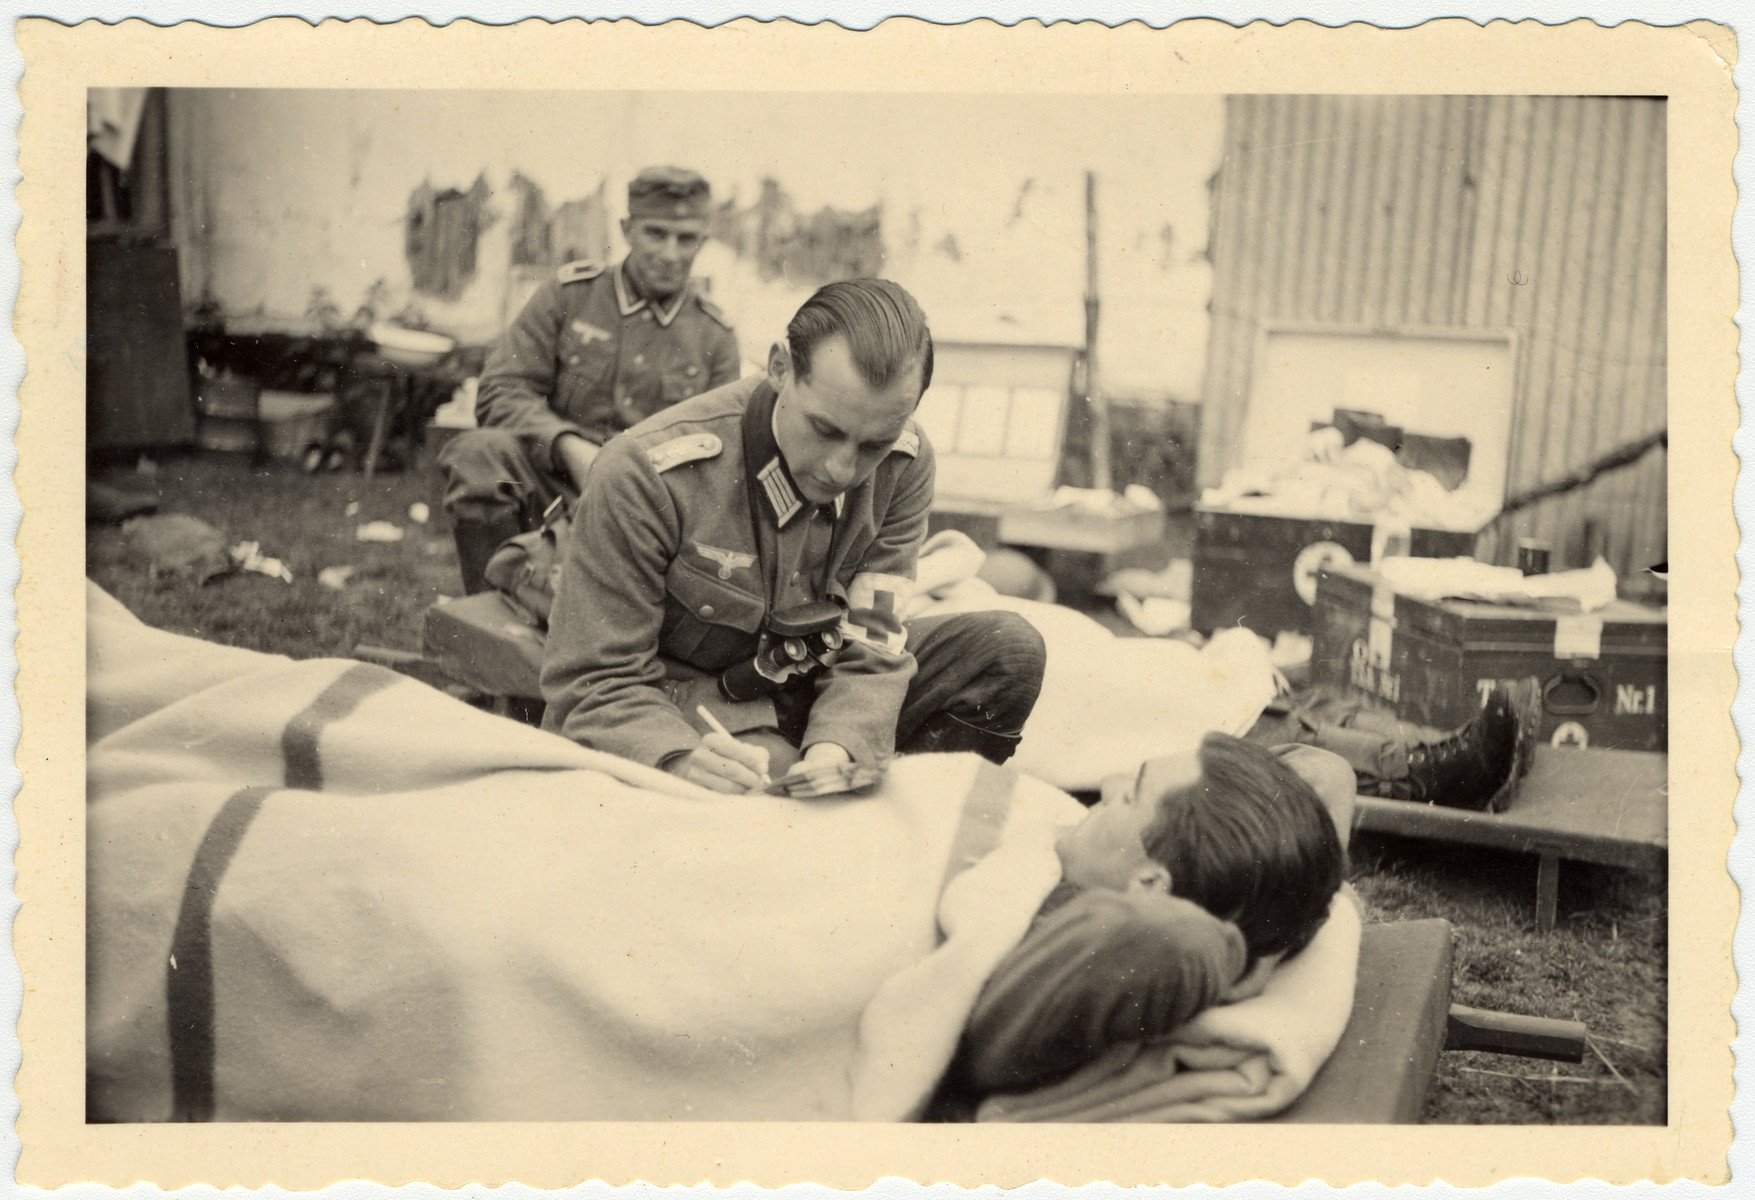 German army physician Bernhard Kullak peforms a medical examination in either a field hospital or training facility.